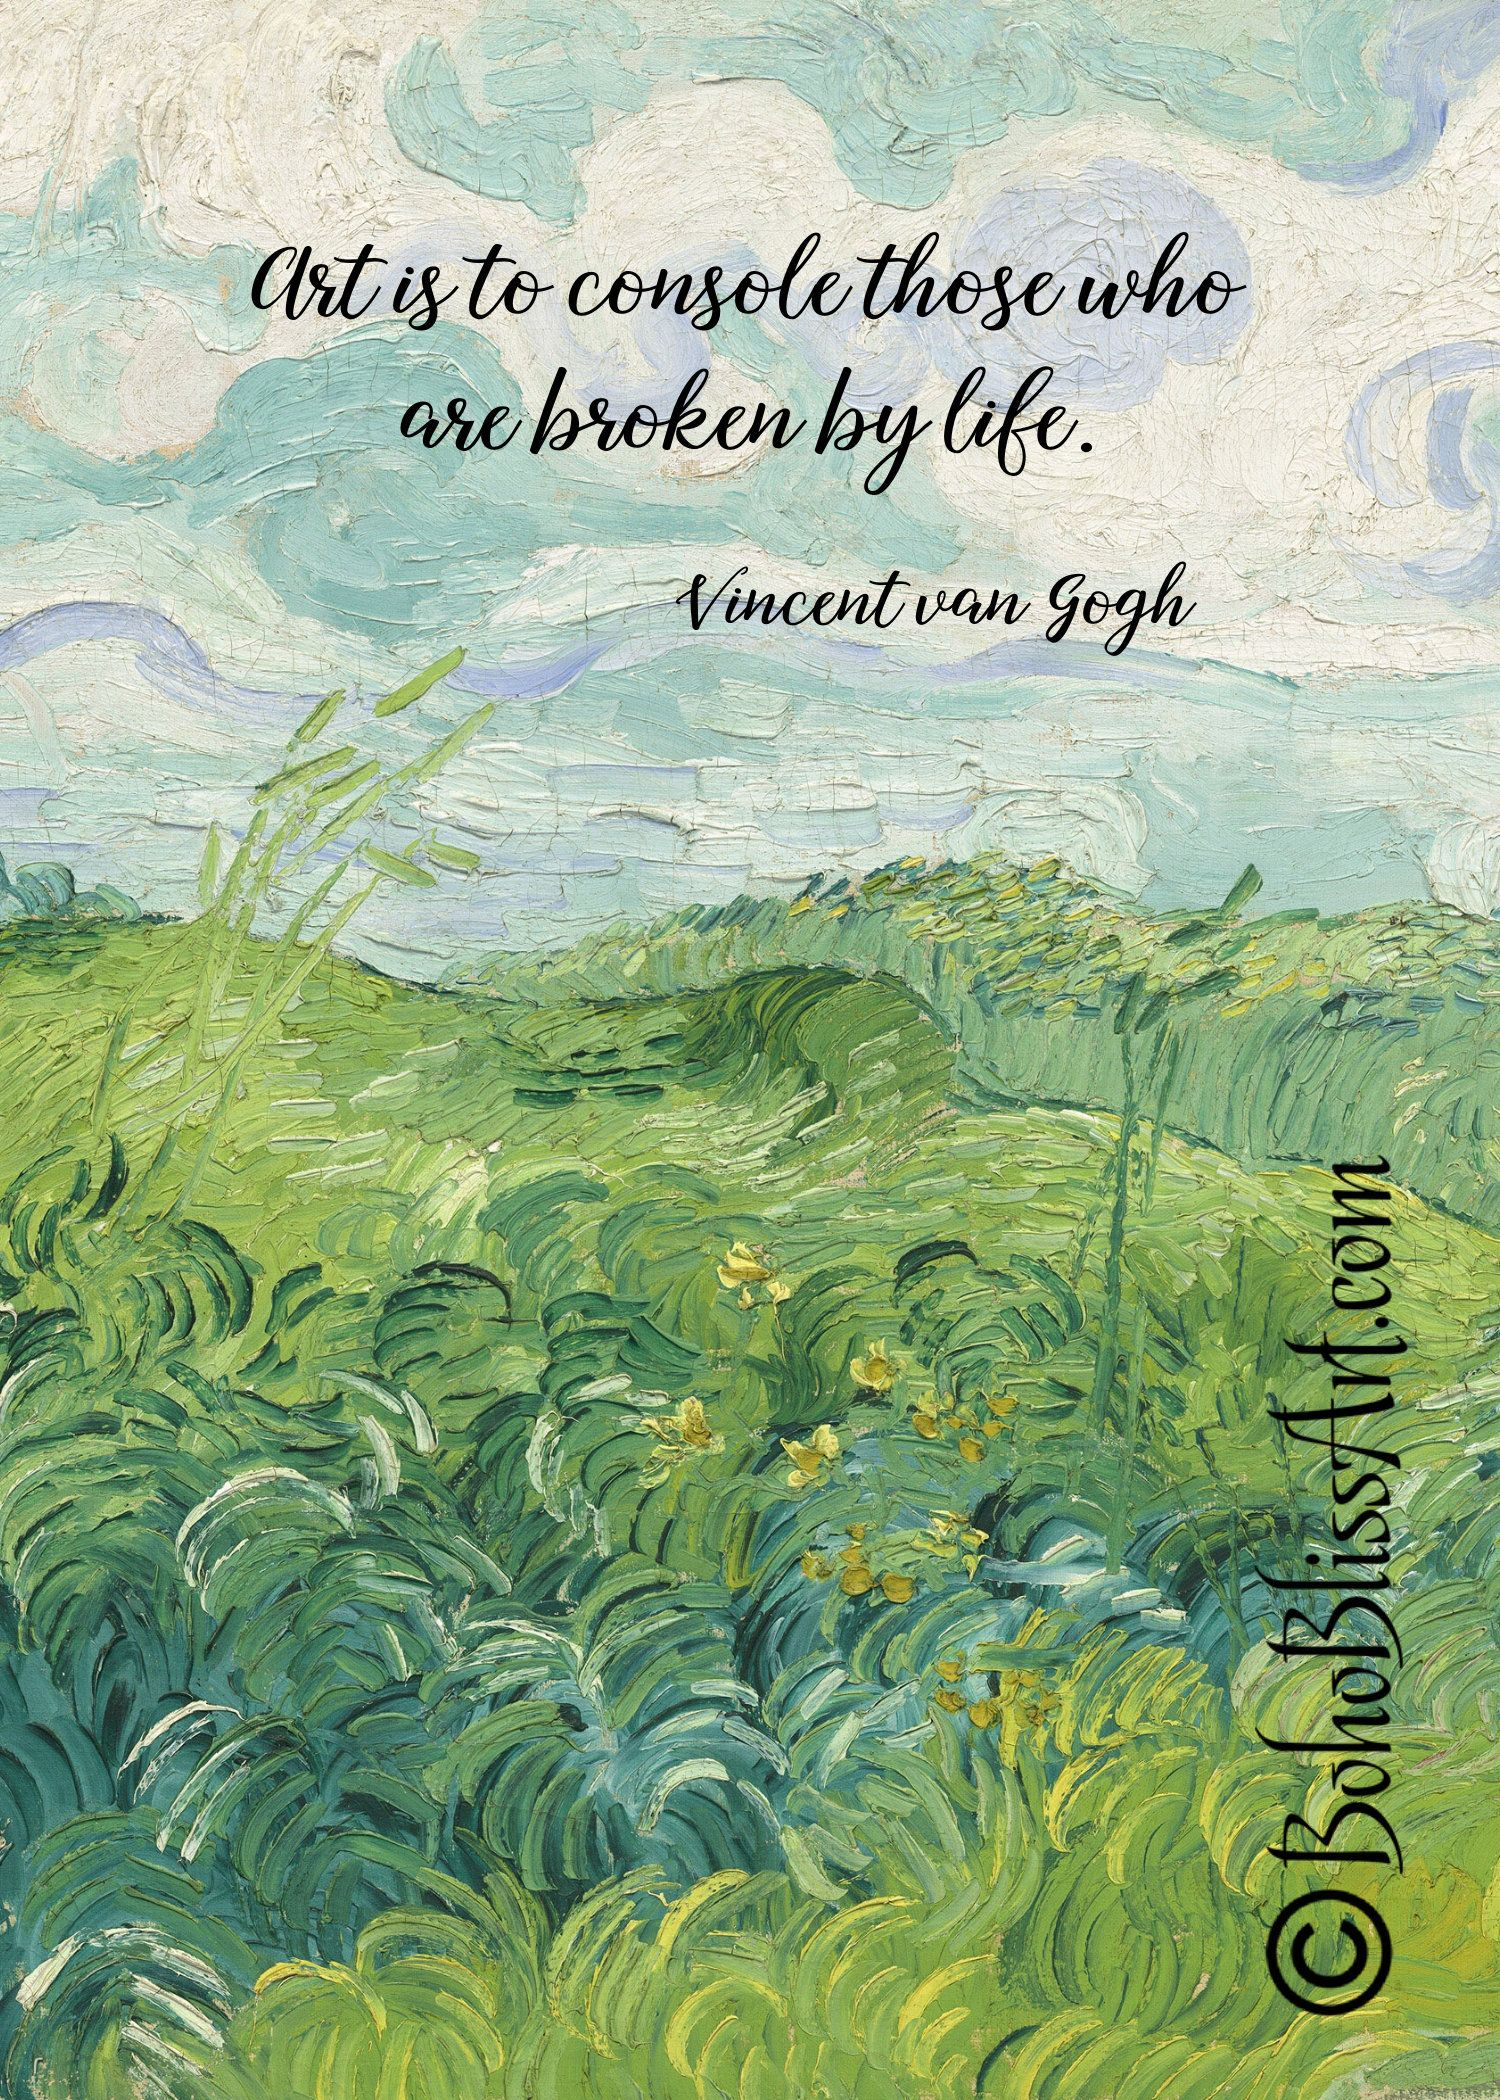 Vincent van Gogh Quote: Art is to console those who are broken by life. Perfect Gift for Artists! Green Wheat Fields Art Print